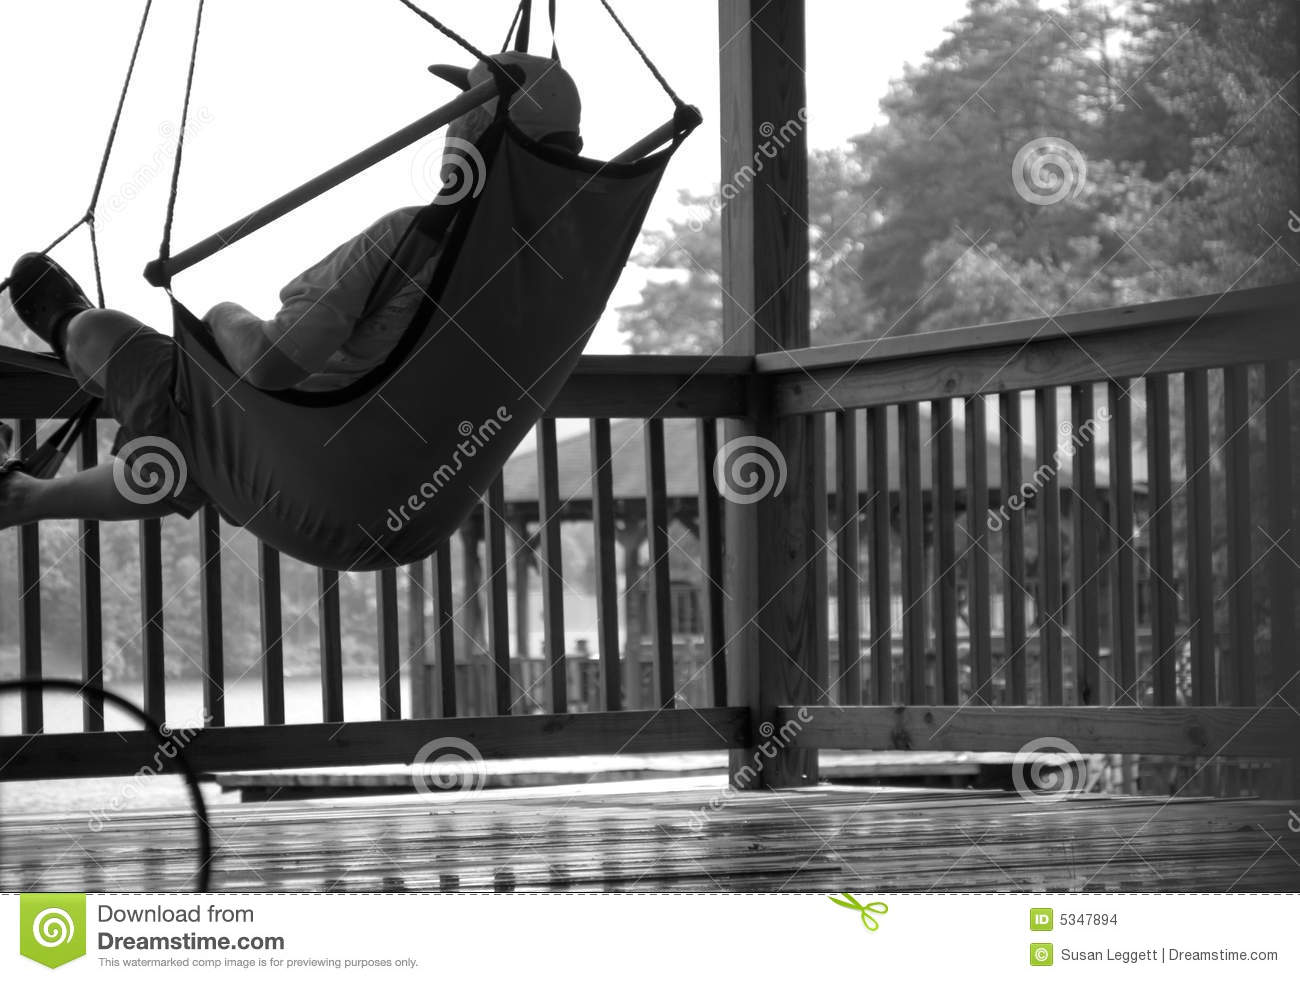 Leisure/Man Relaxing on Deck